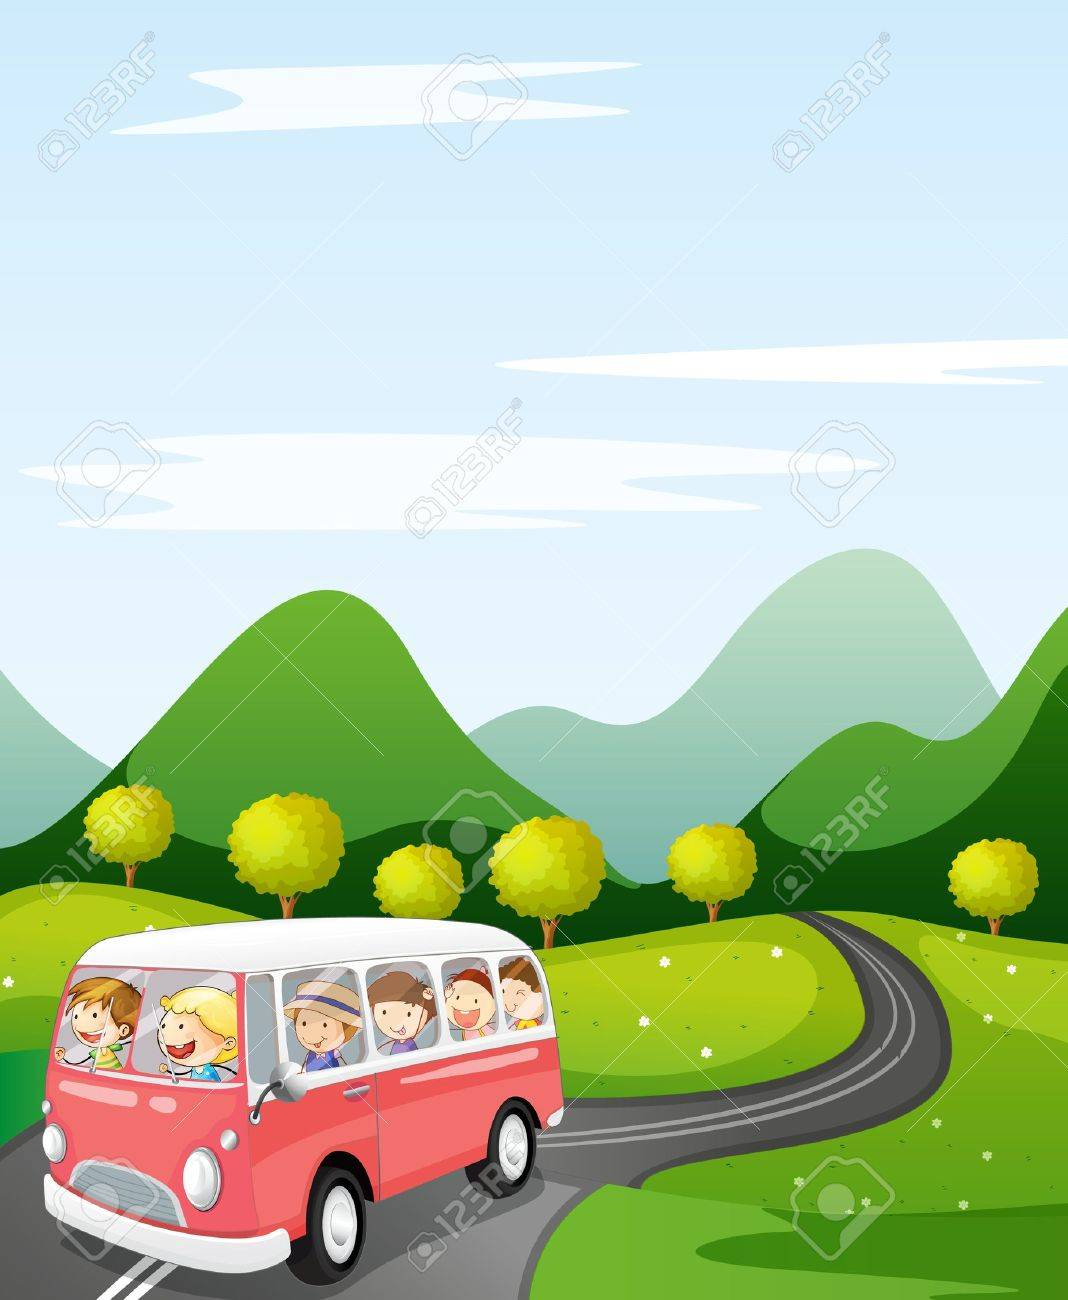 illustration of a kids in a bus in a beautiful nature Stock Vector - 14922812